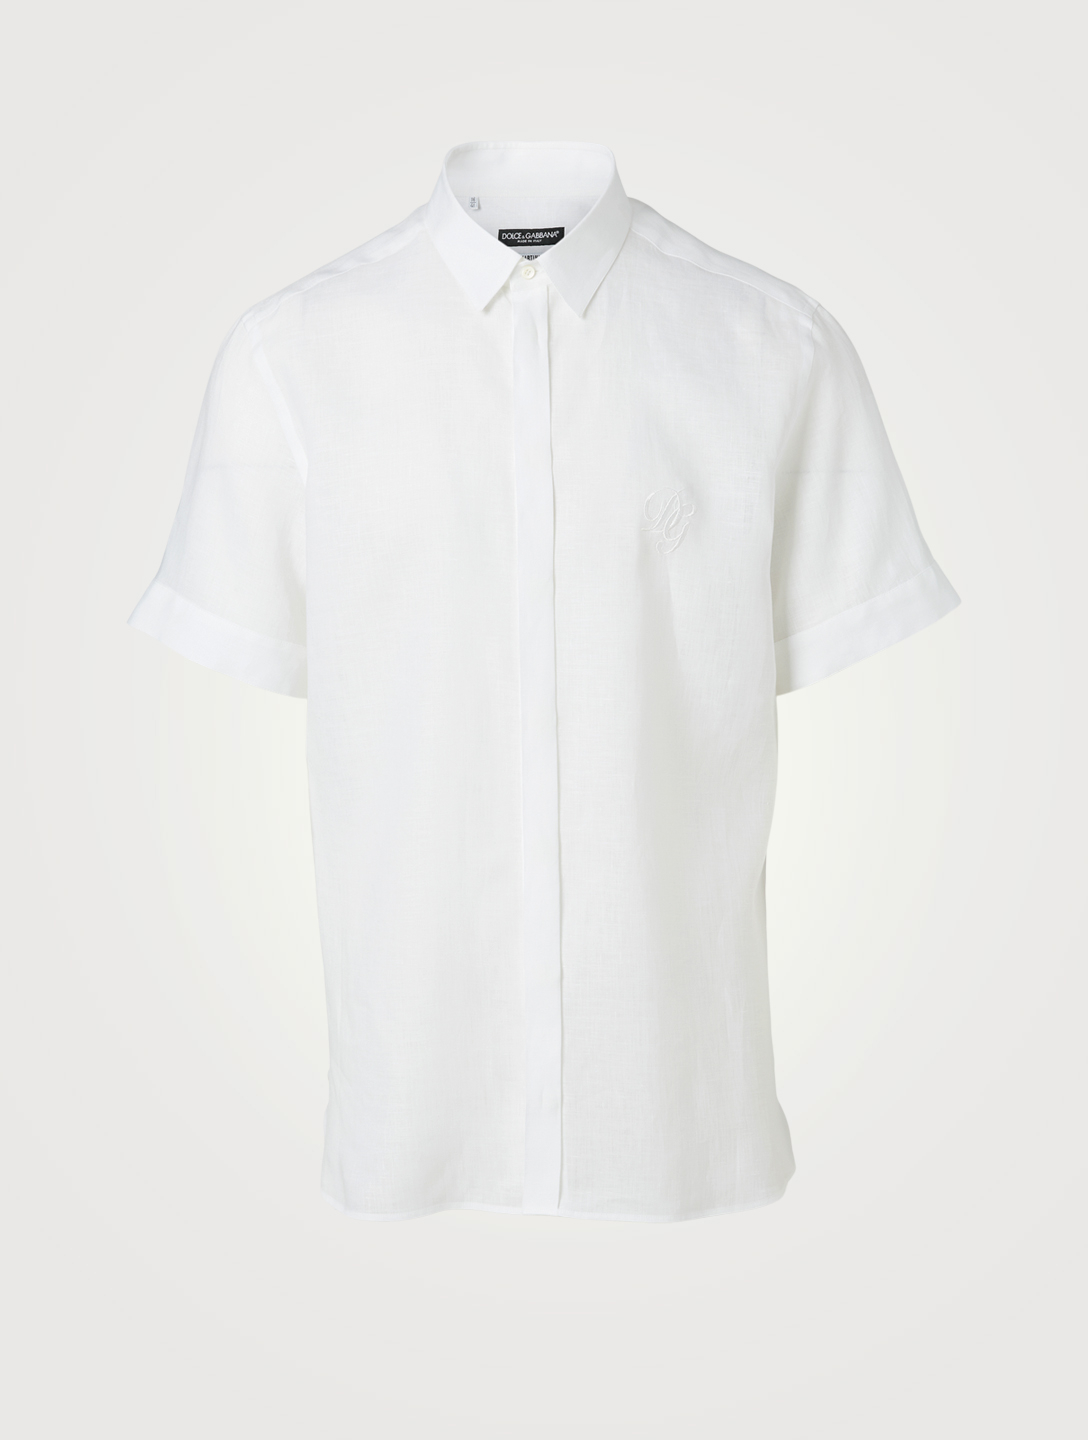 DOLCE & GABBANA Linen Short-Sleeve Shirt Men's White